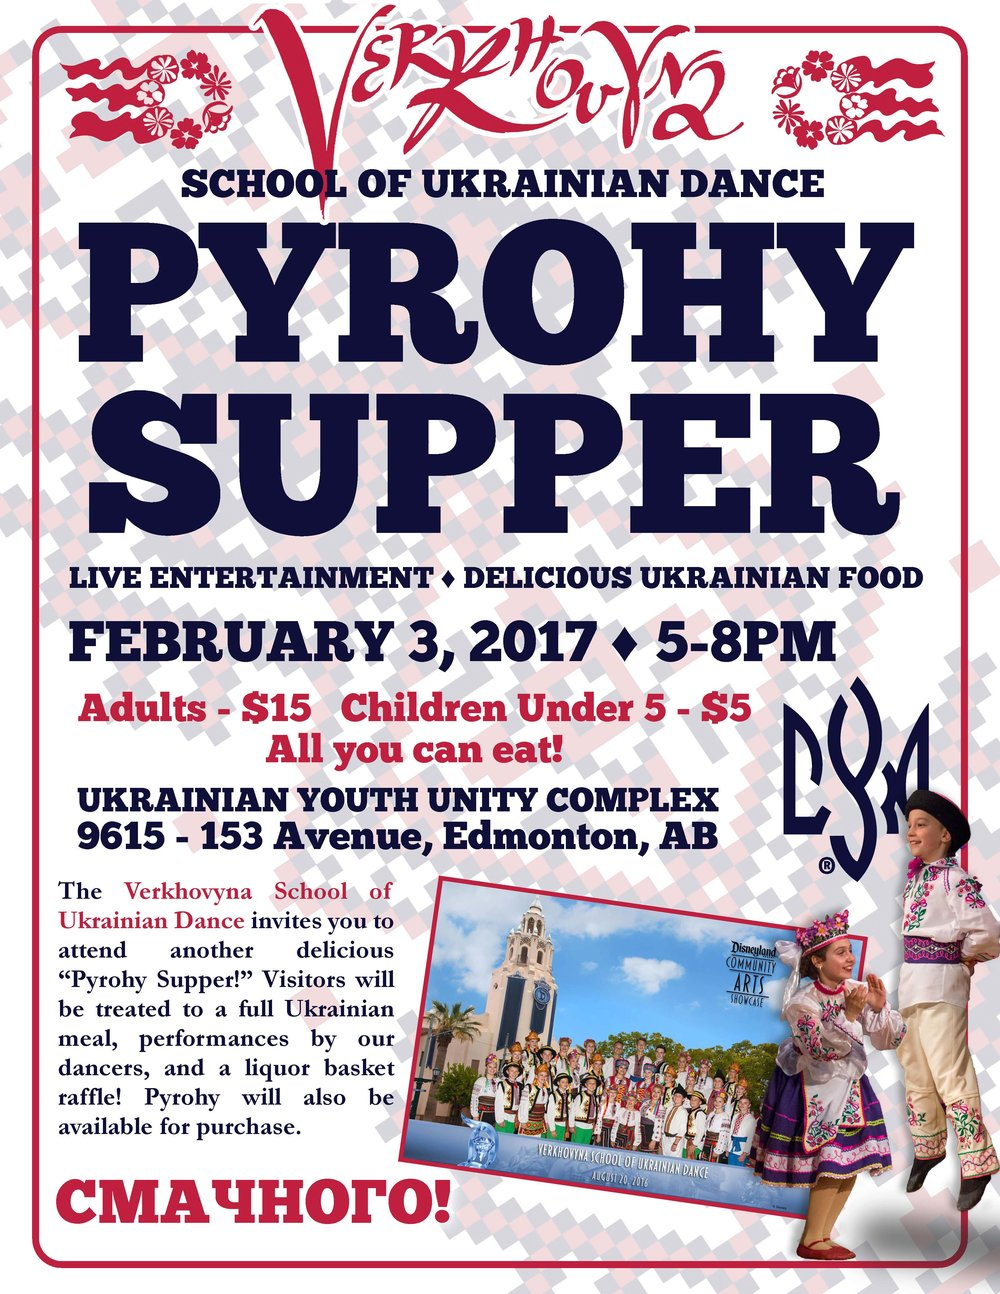 pyrohy-supper-feb2017-updated.jpg